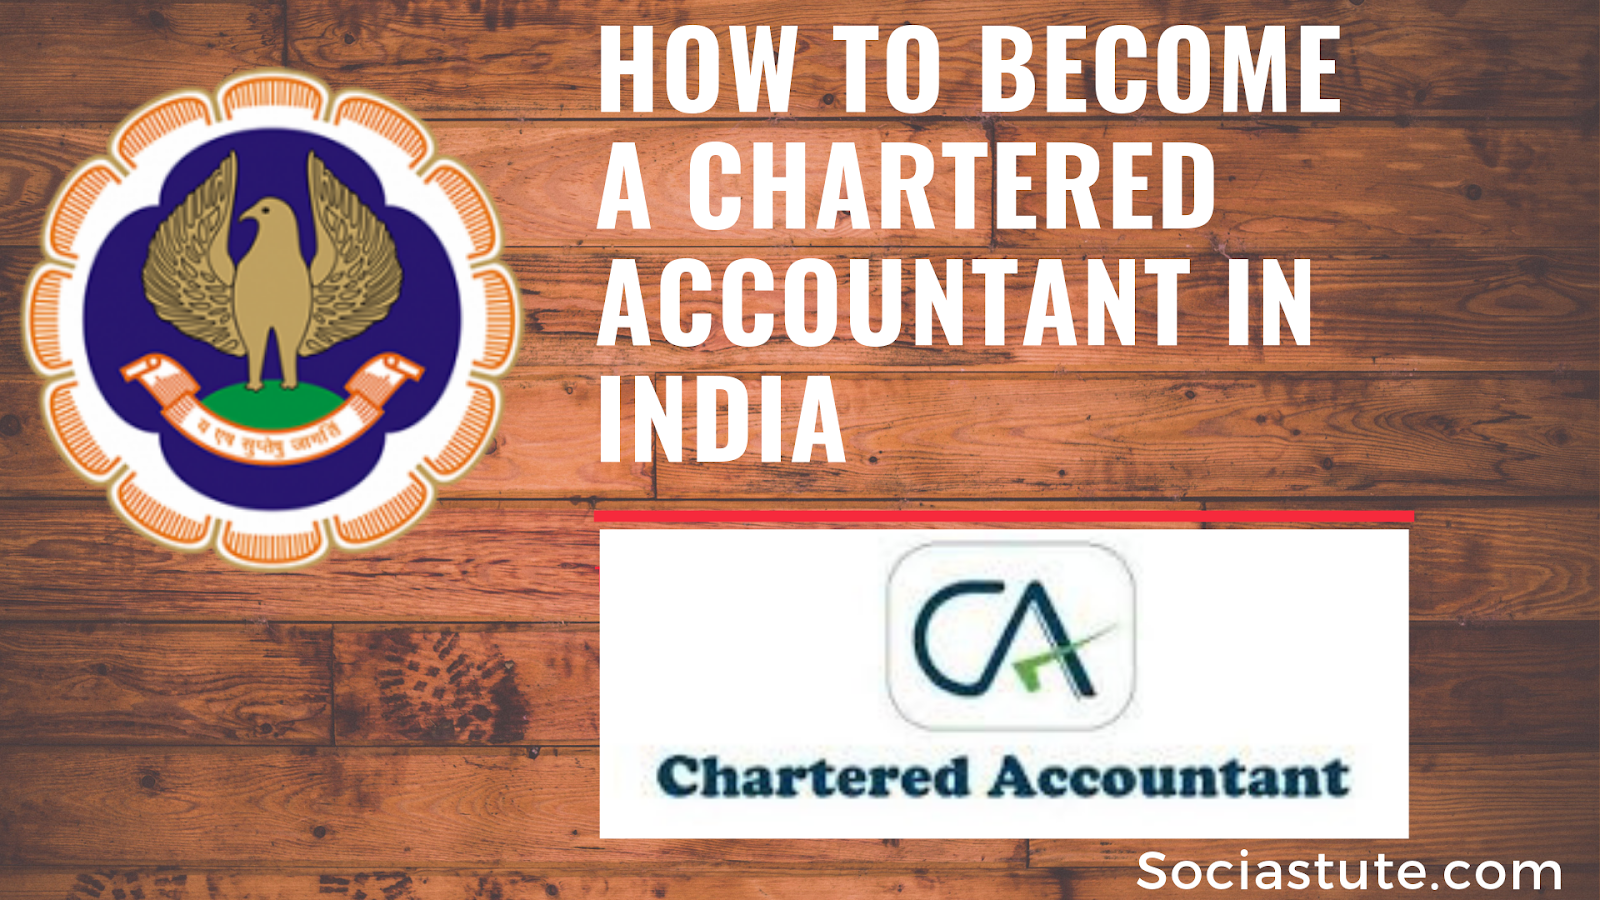 How To Become a CA (Chartered Accountant)